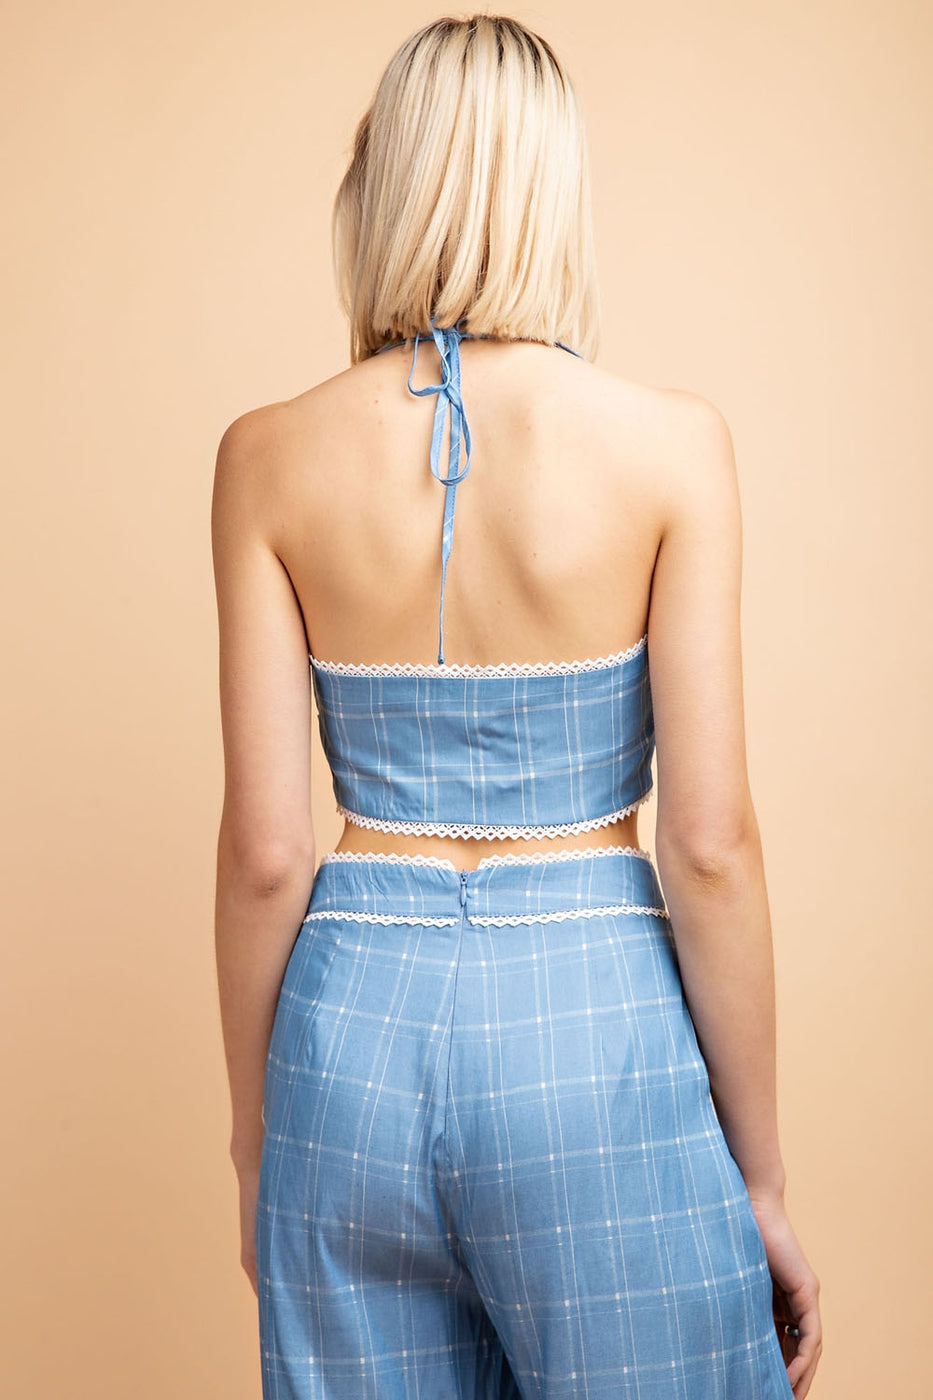 Grid Print Halter Crop Top with Bow Detail - Siin Bees